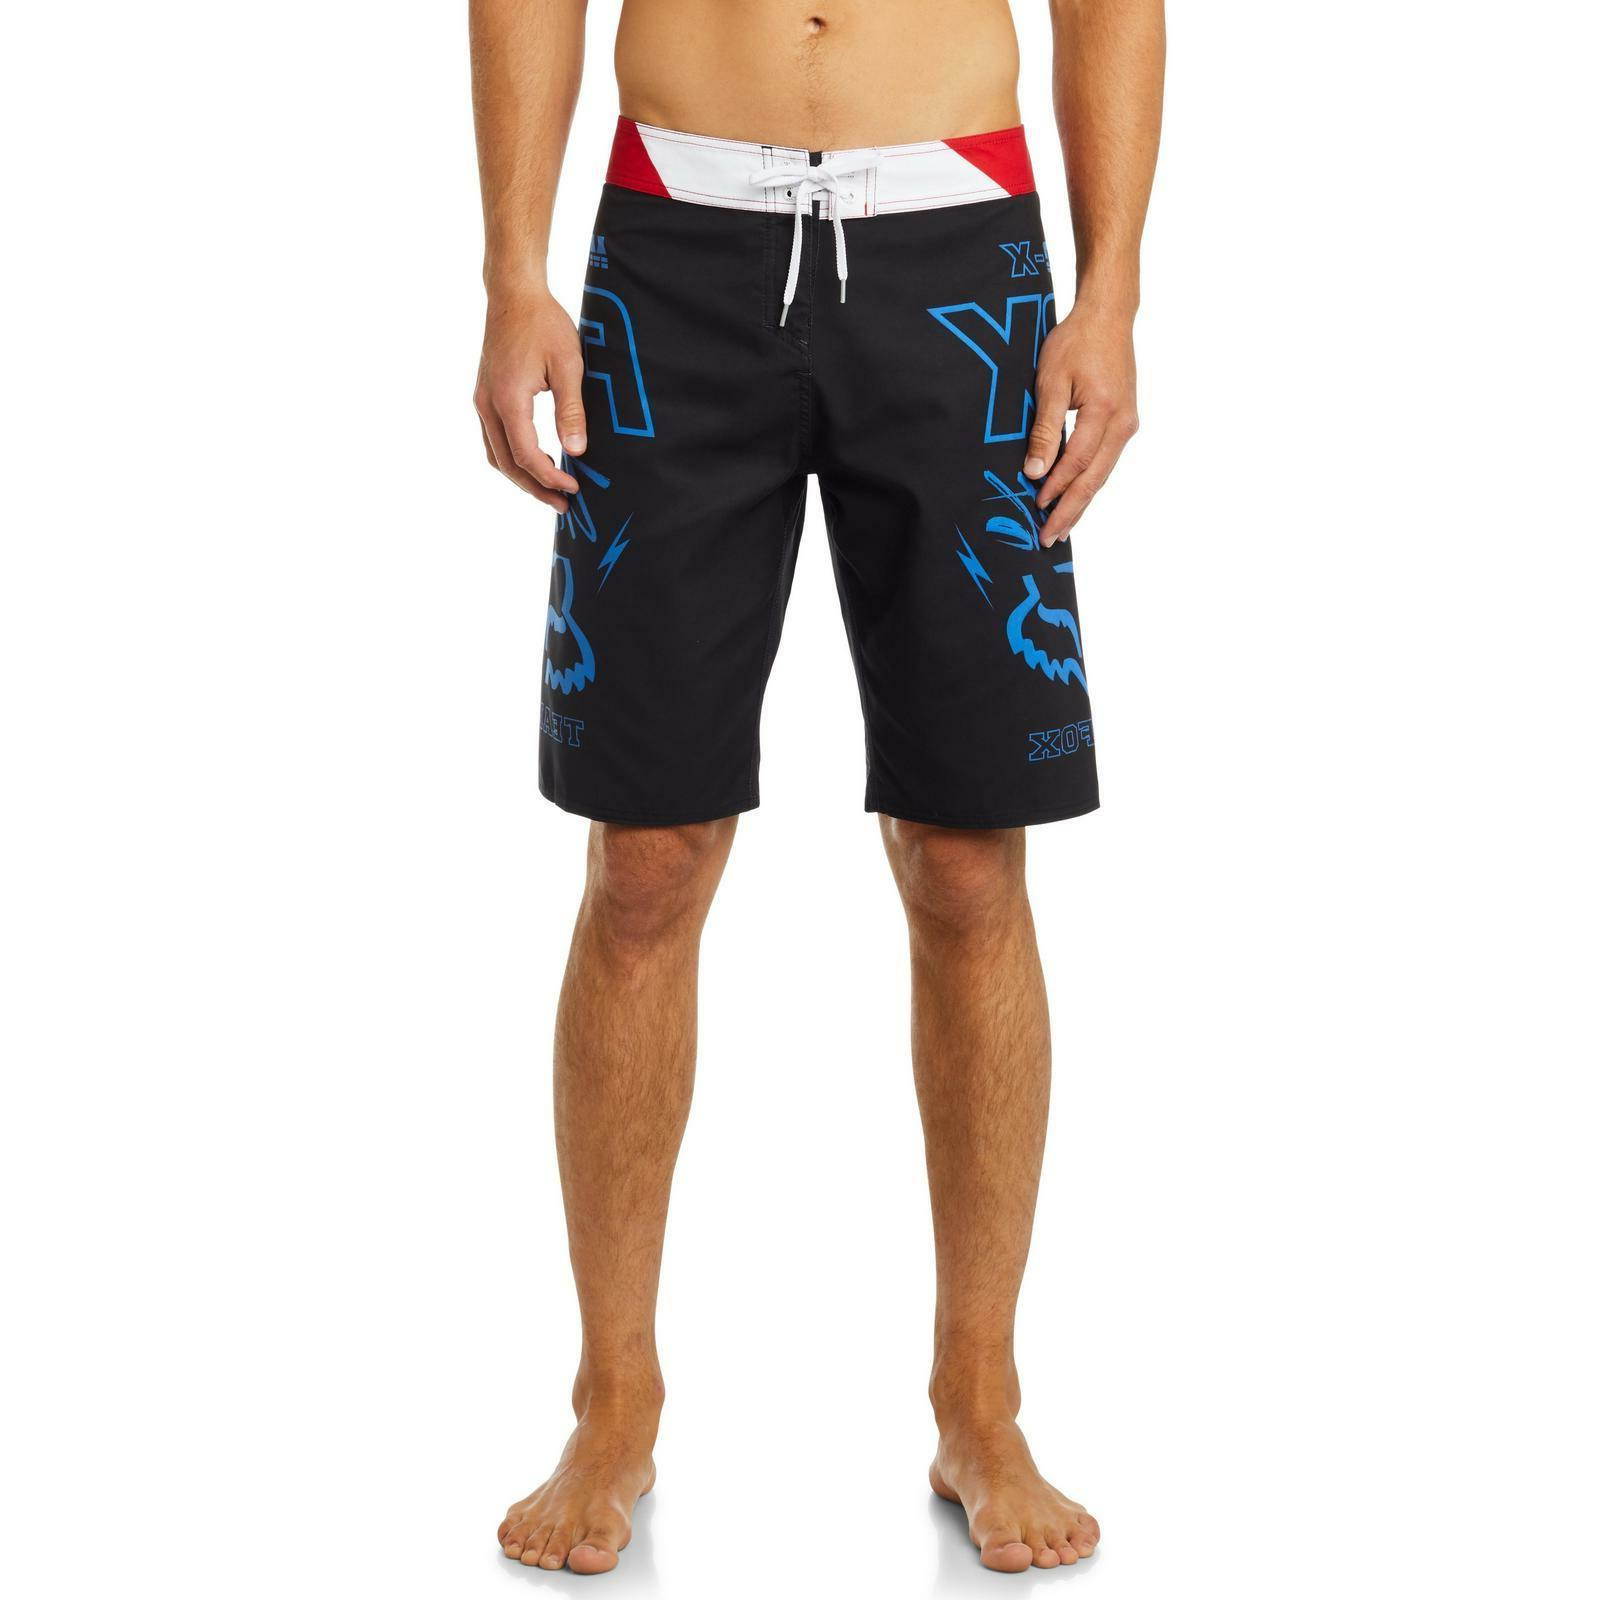 Fox Boardshort Throttle Black Red Swim Surf